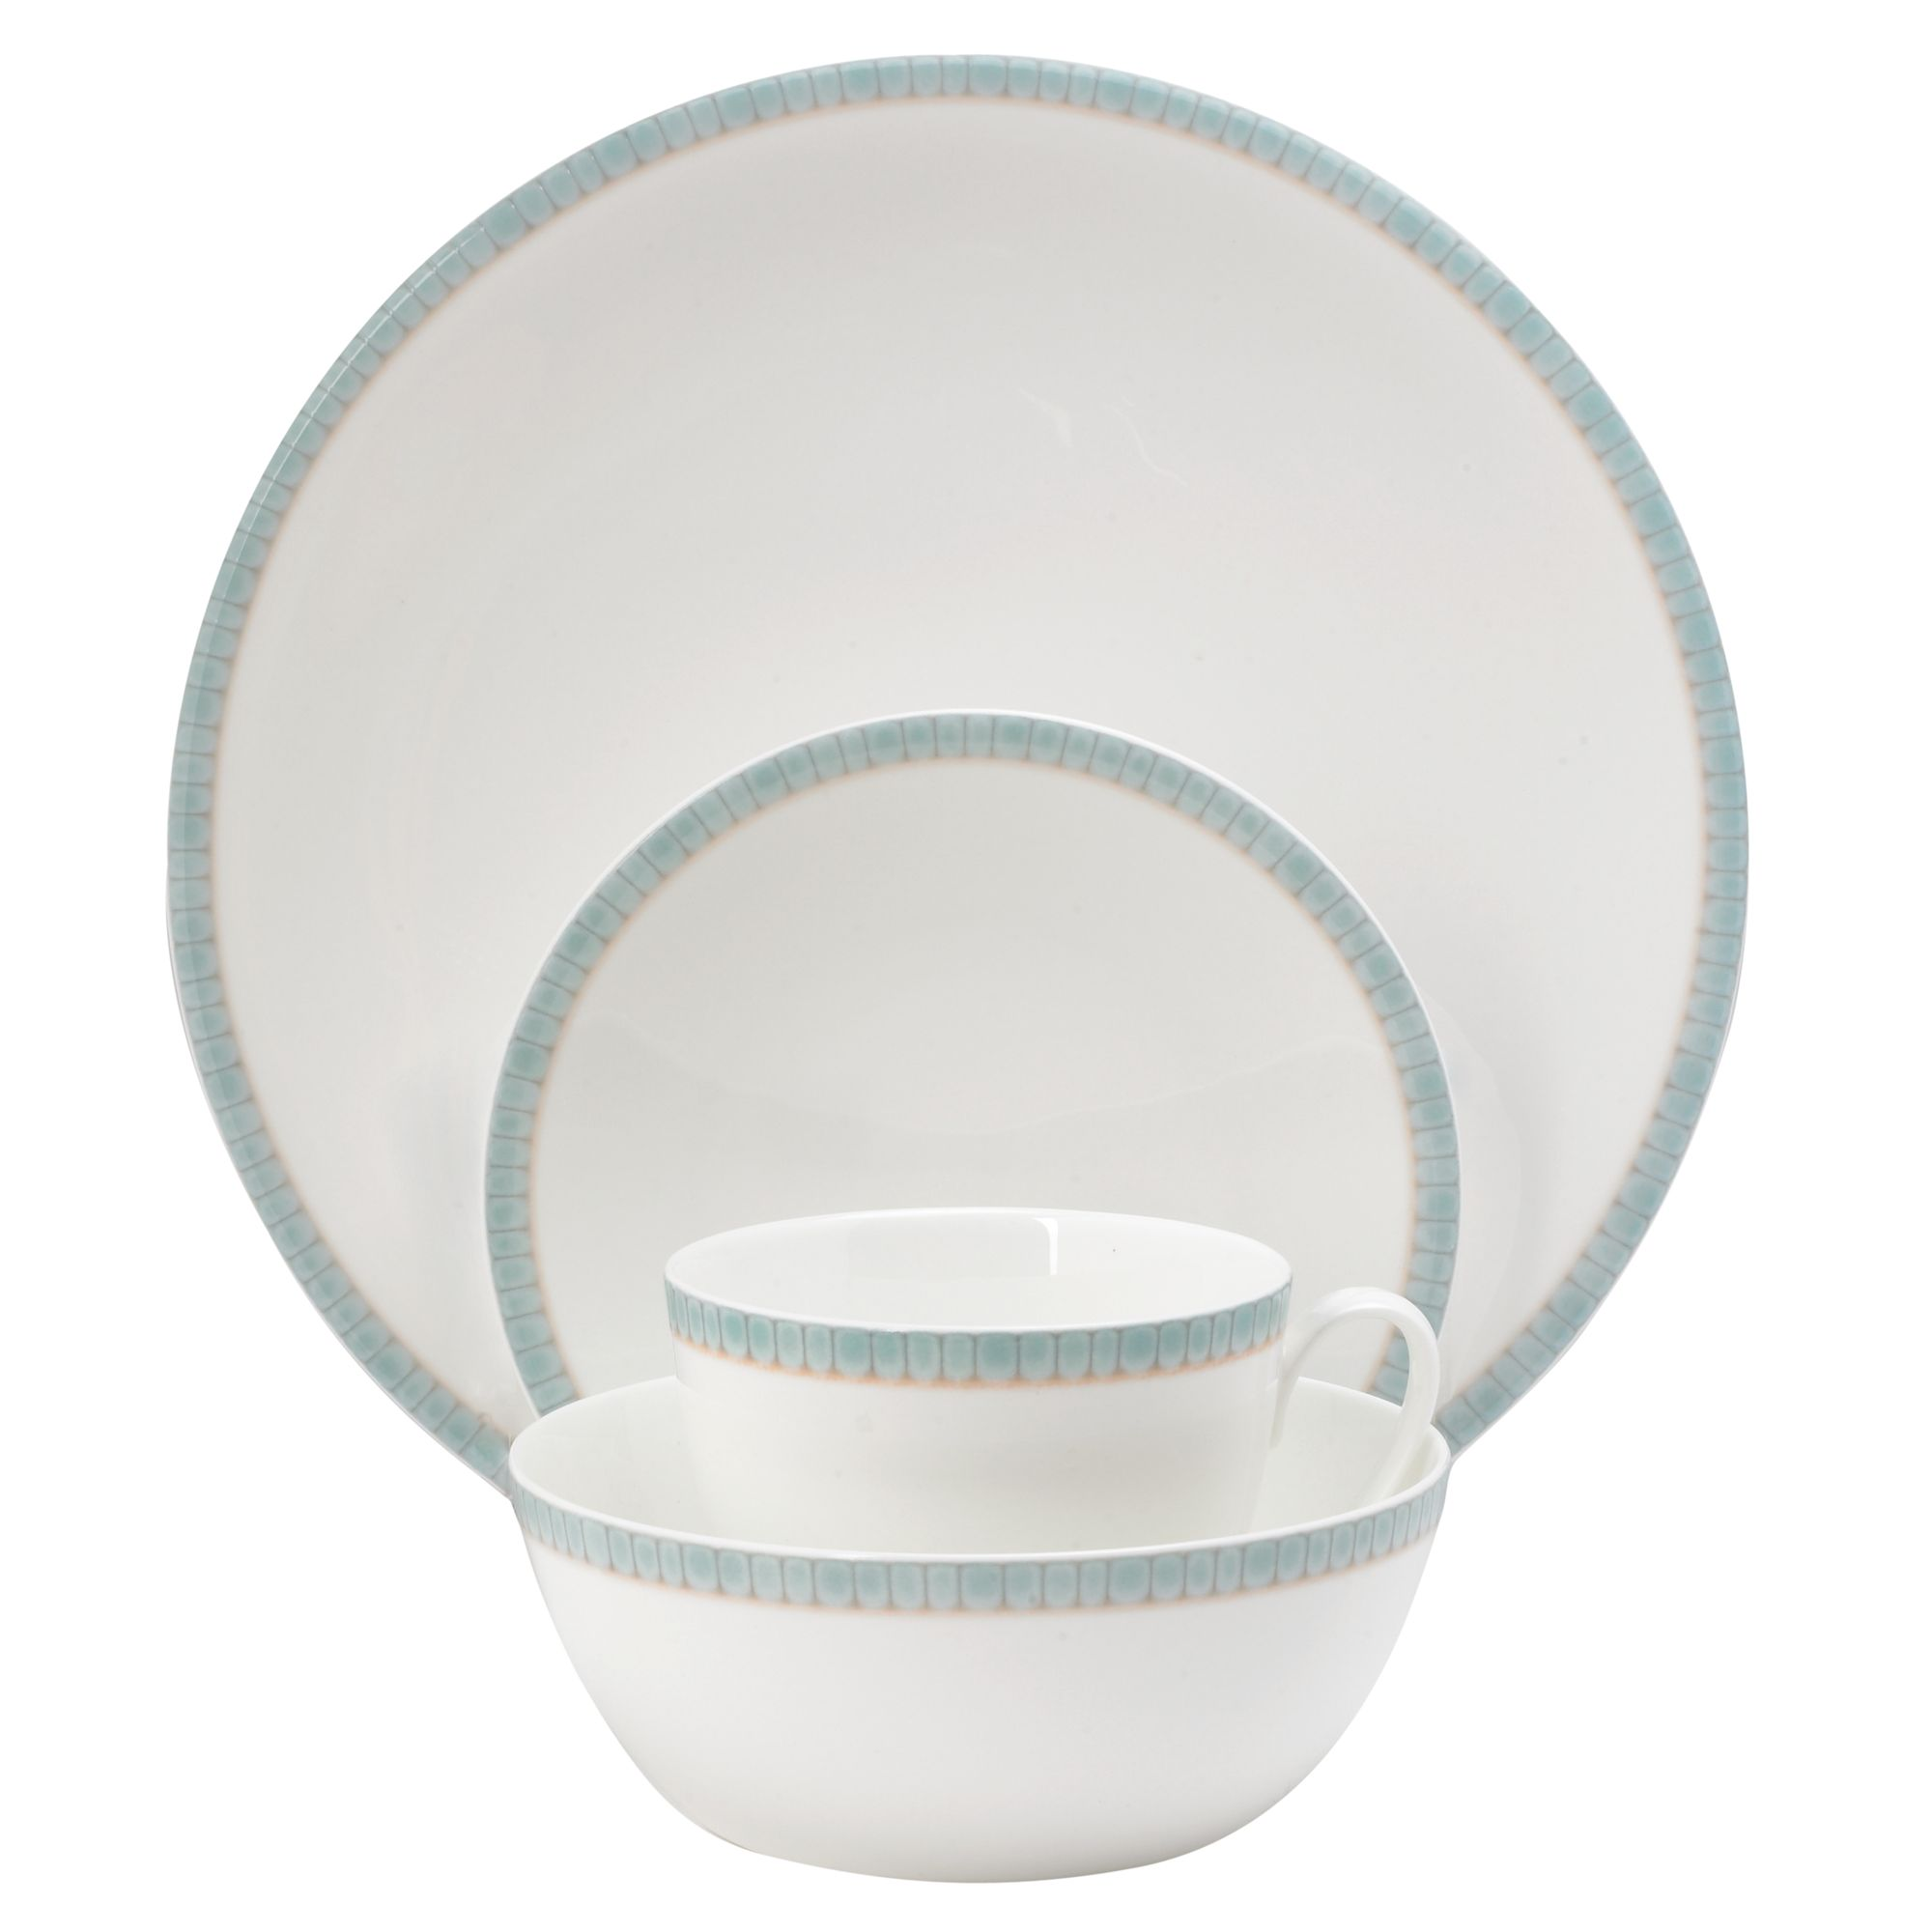 Jewel China 4 Piece Set